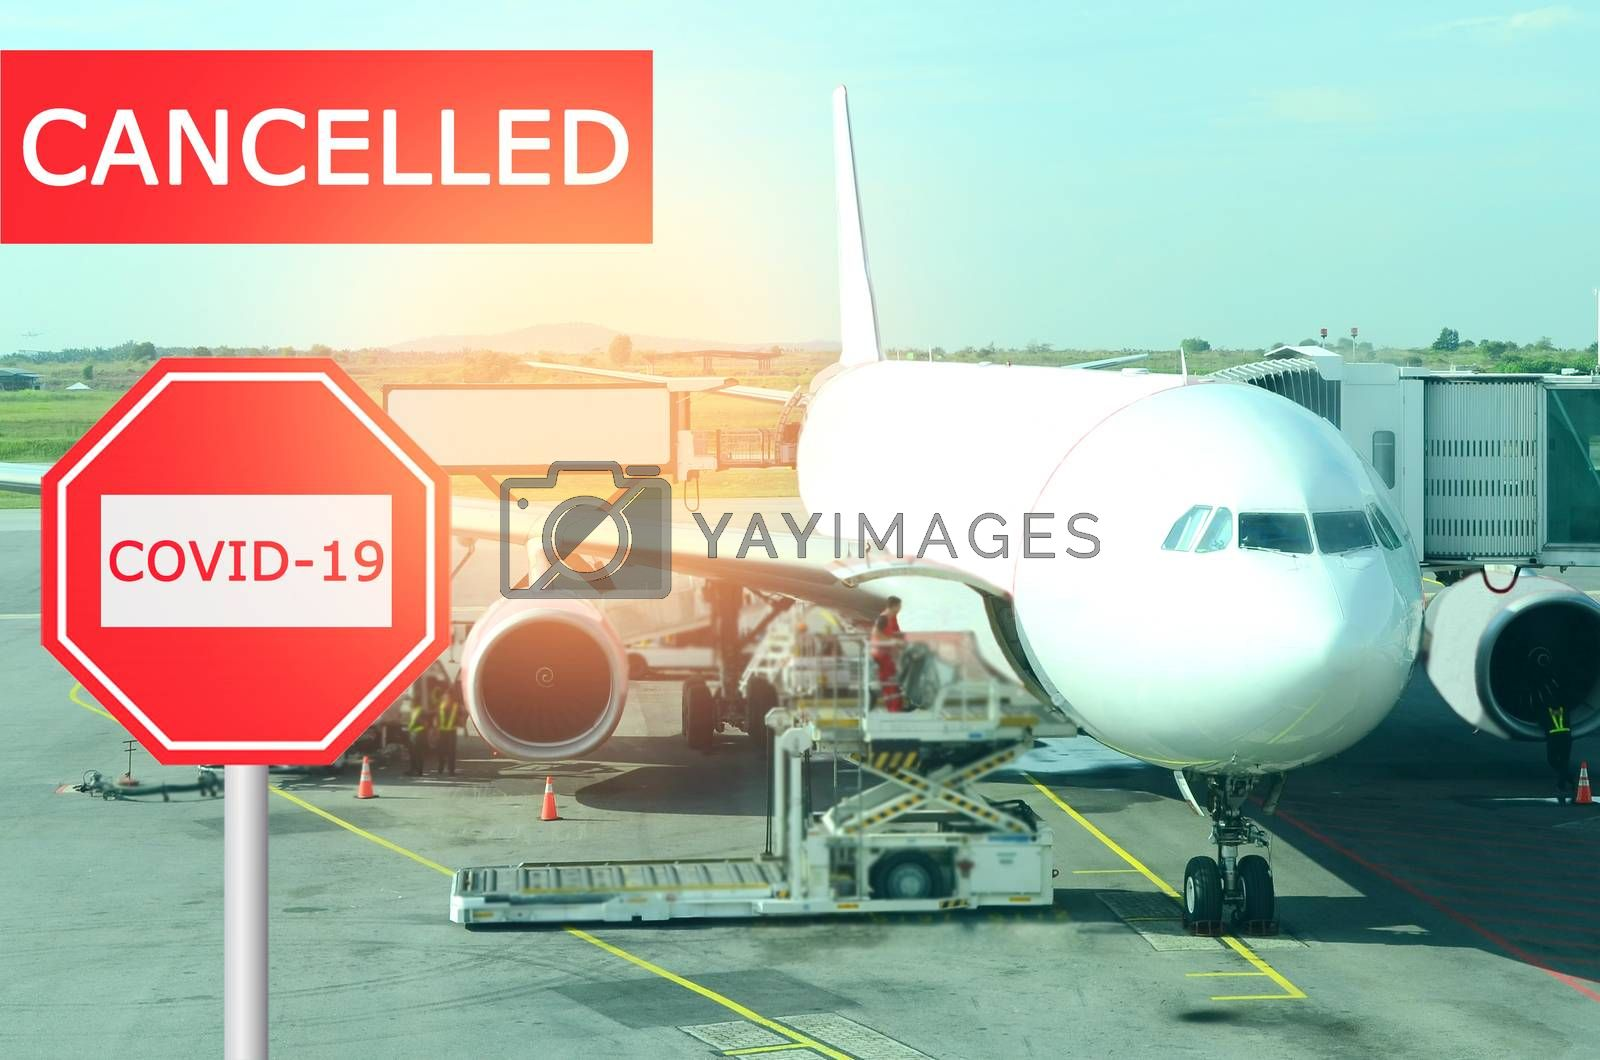 Flights were cancelled due to the spread of the coronavirus, pandemic covid 19.